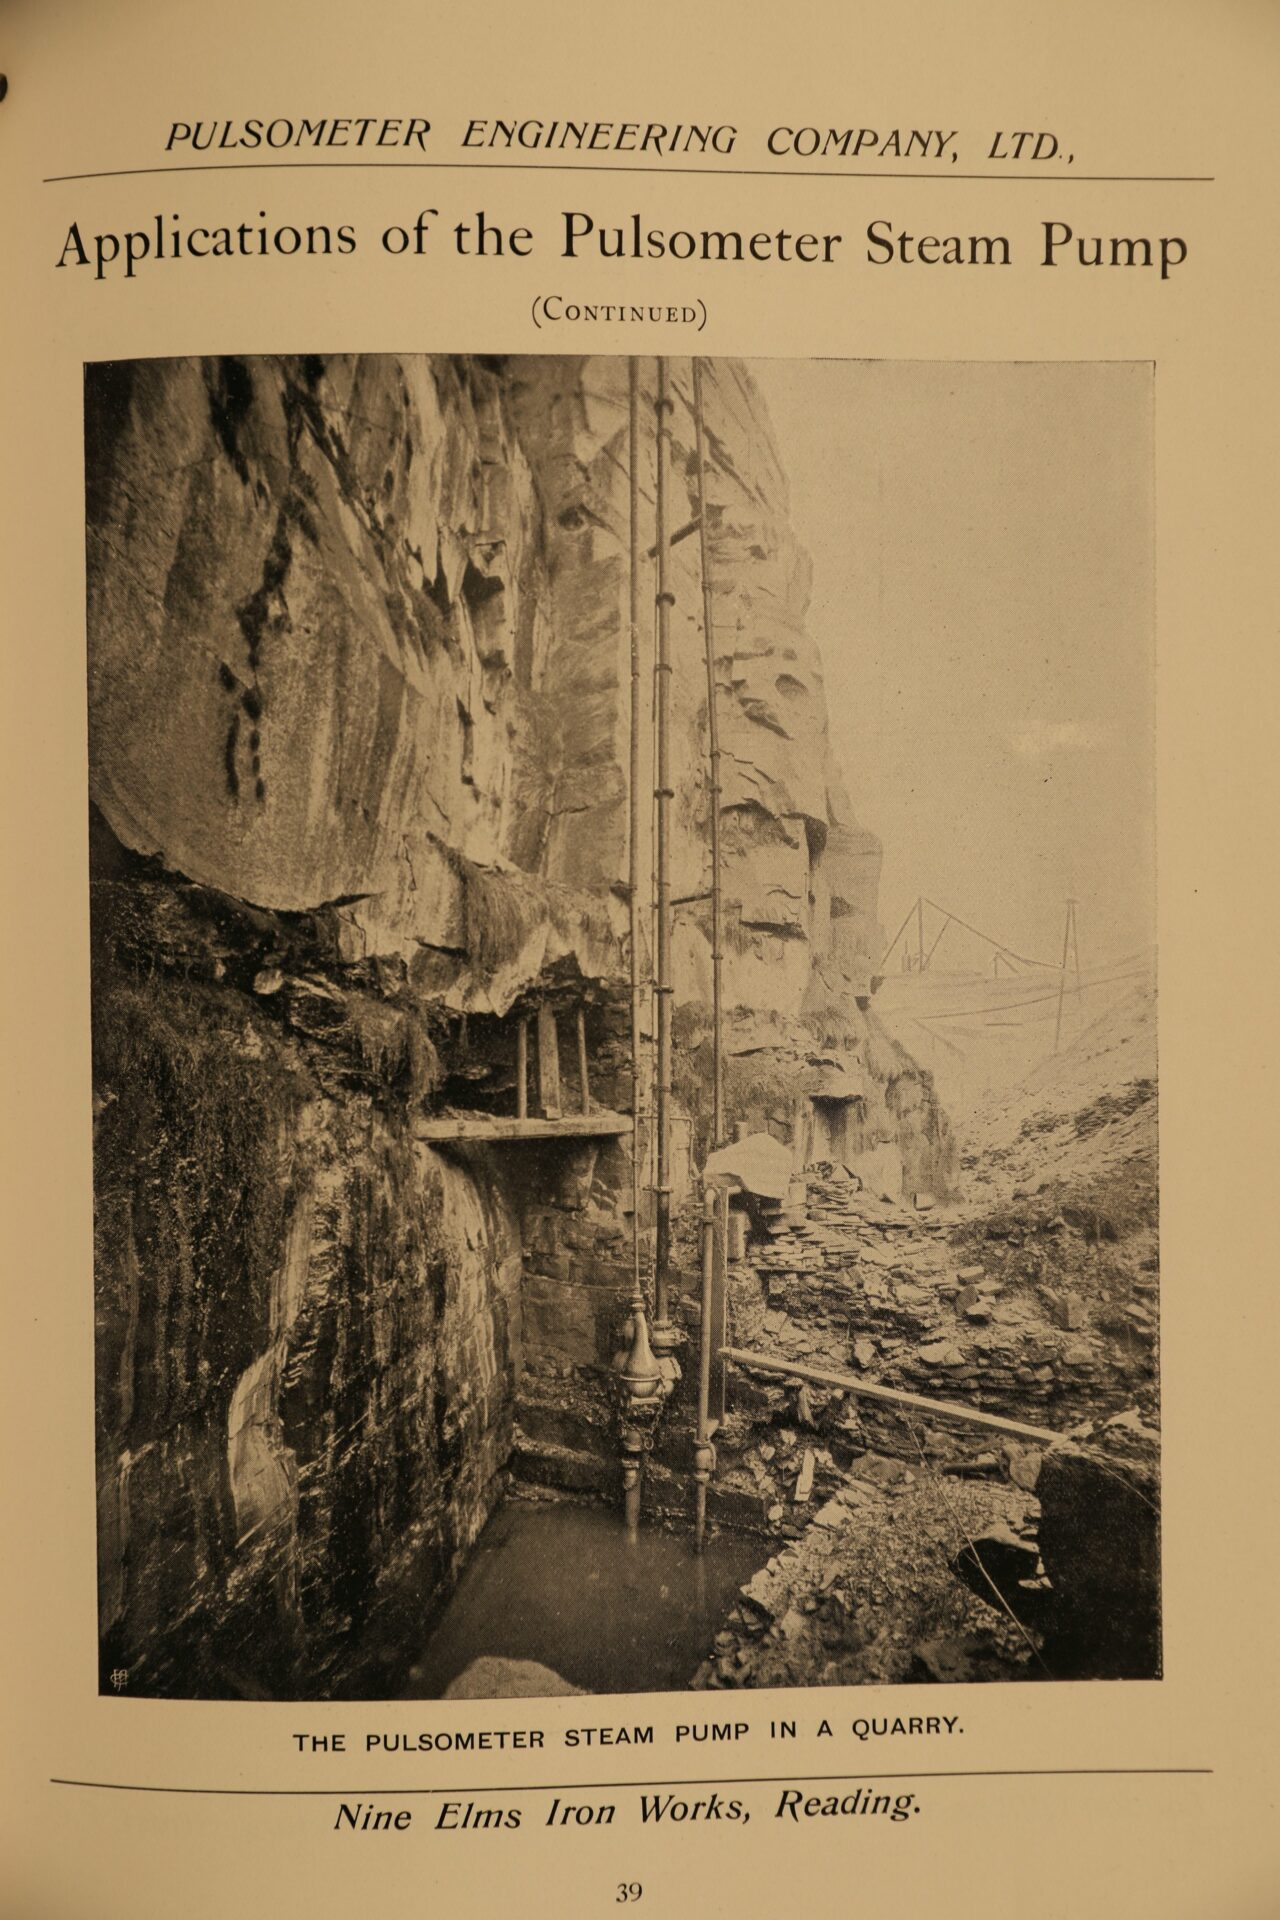 Image of page 39 from Pulsometer Steam Pumps Catalogue 1908 showing pump at work in a quarry